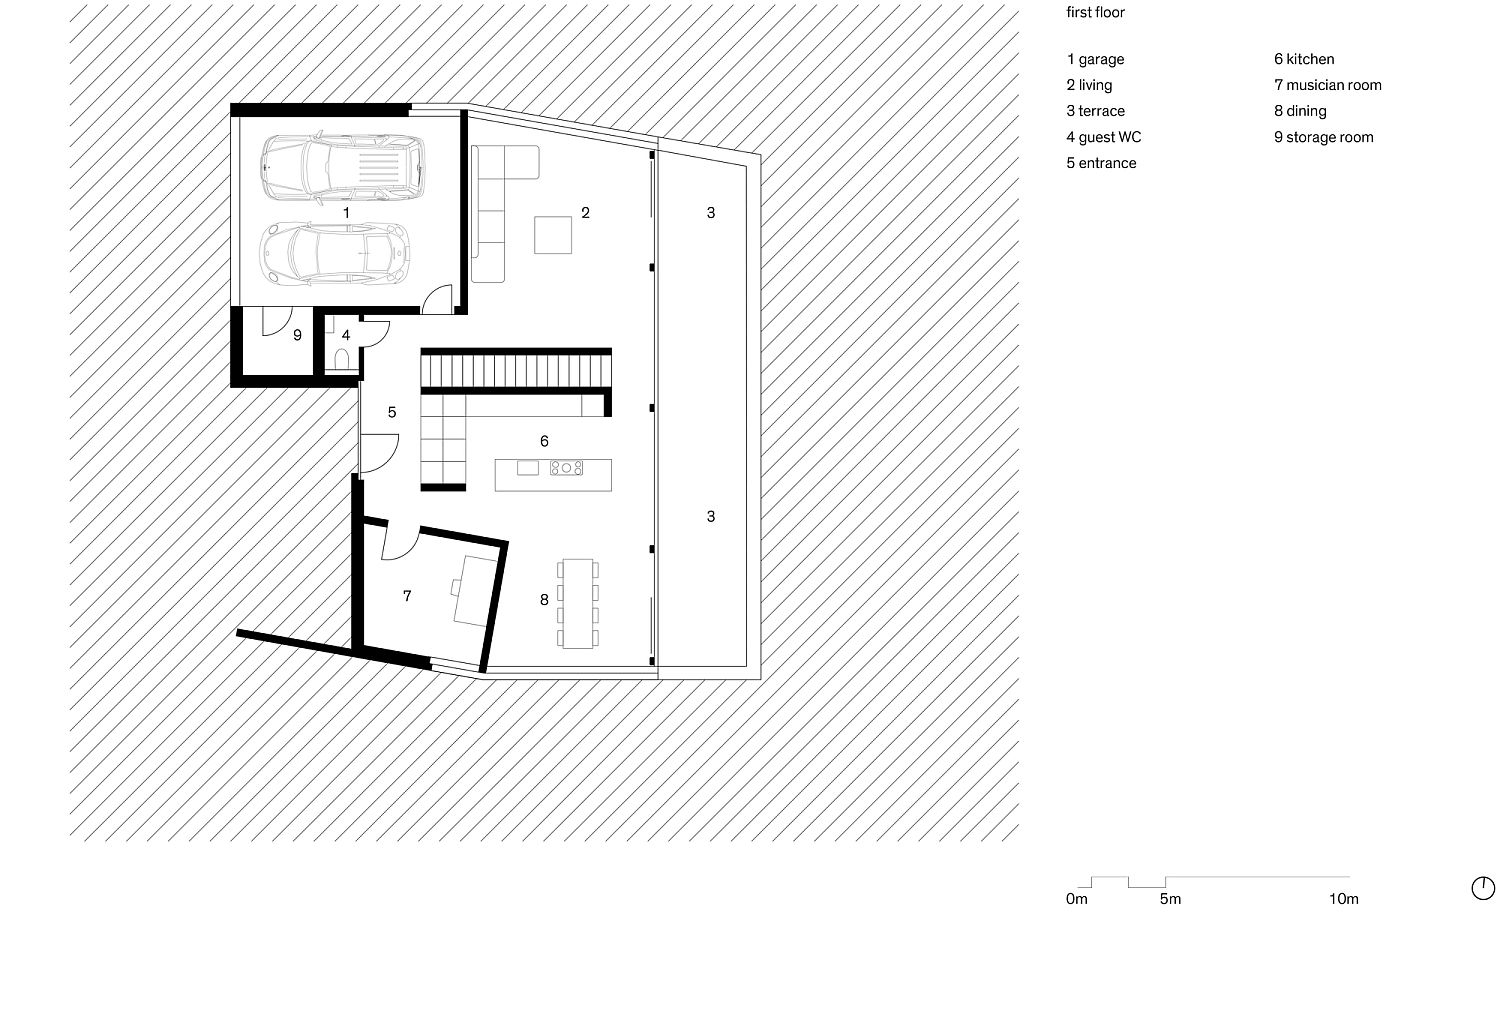 First floor plan of the family house in Switzerland